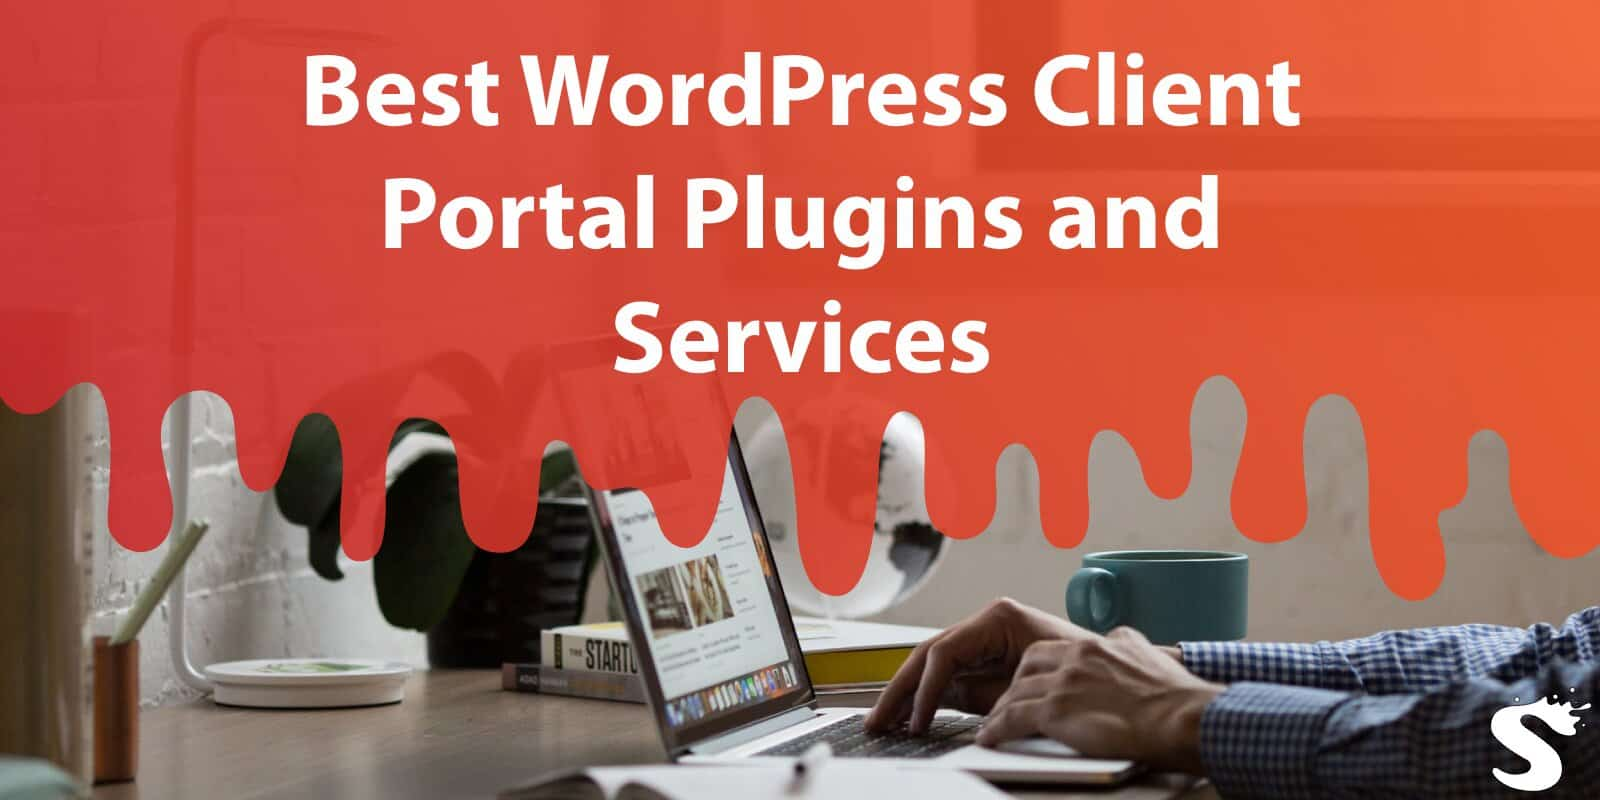 Best WordPress Client Portal Plugins and Services